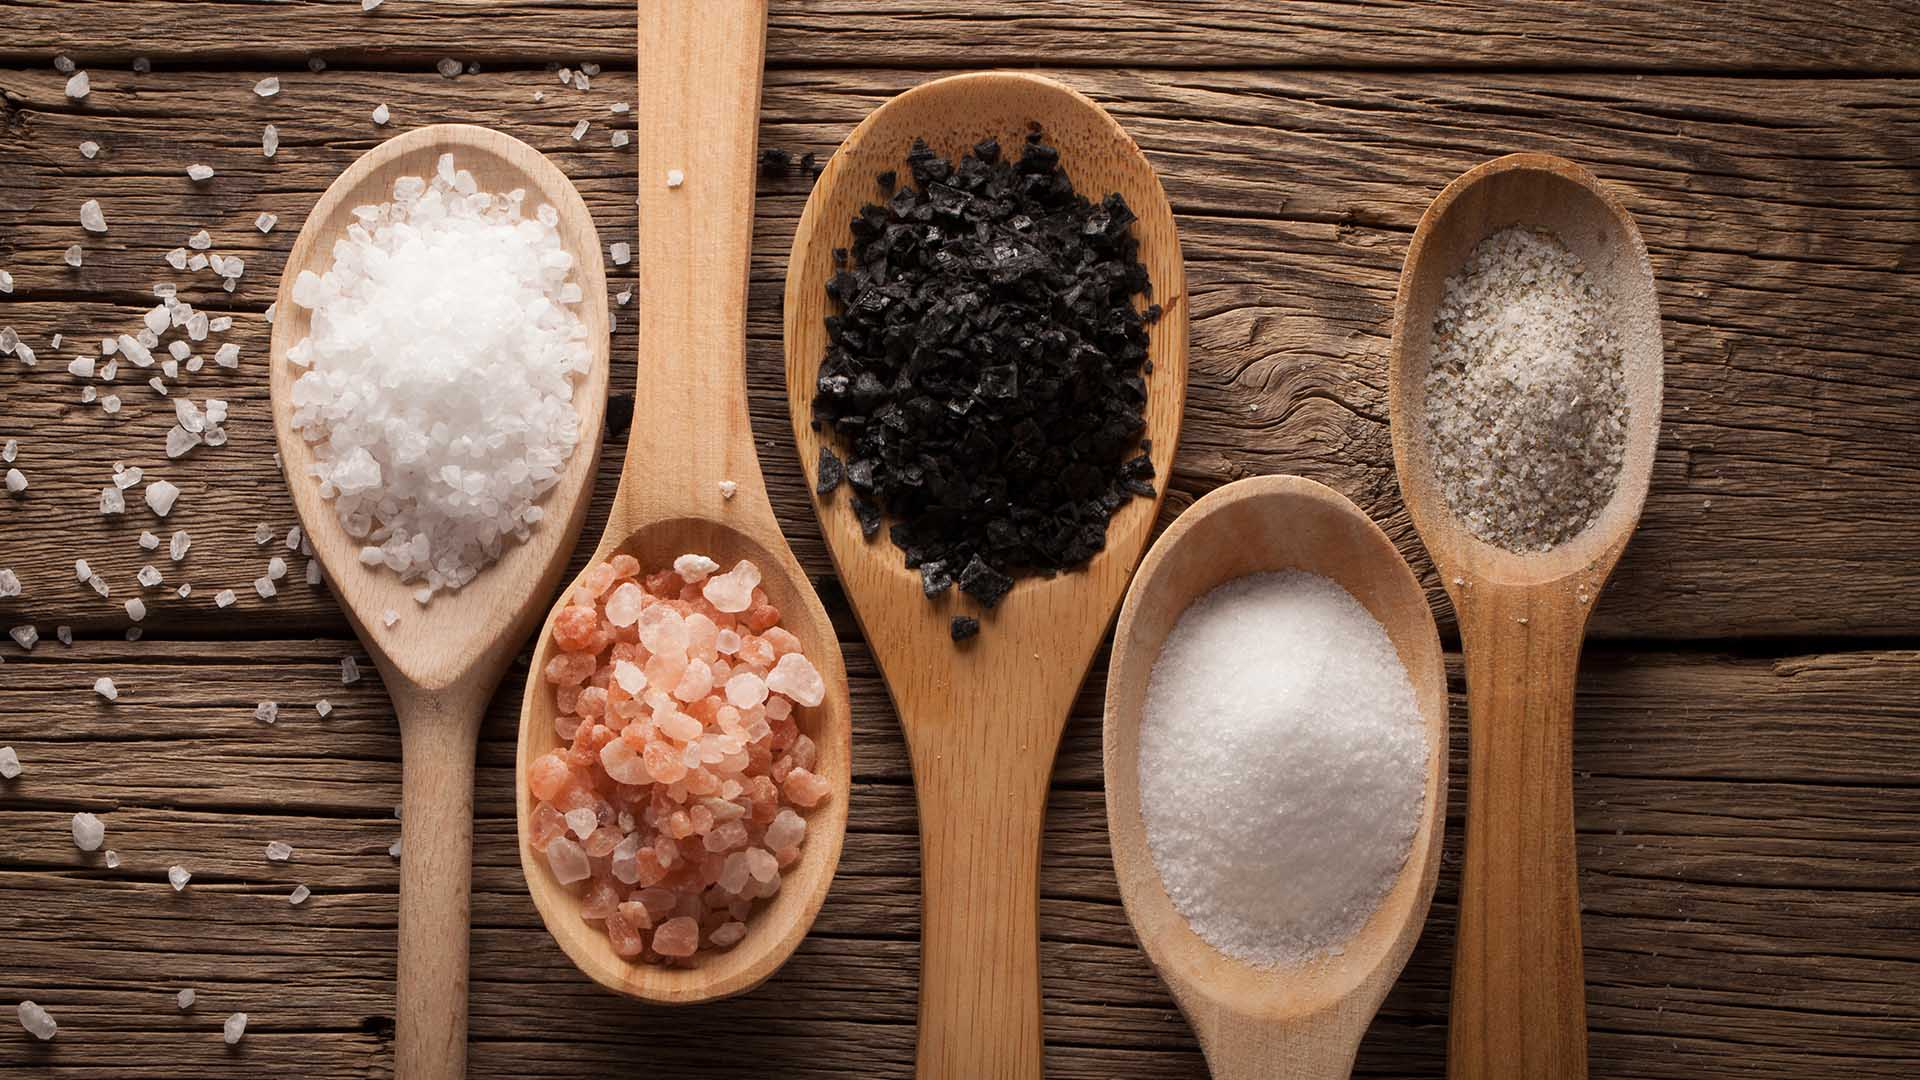 Wooden Spoons with different types of salt in each on wooden surface